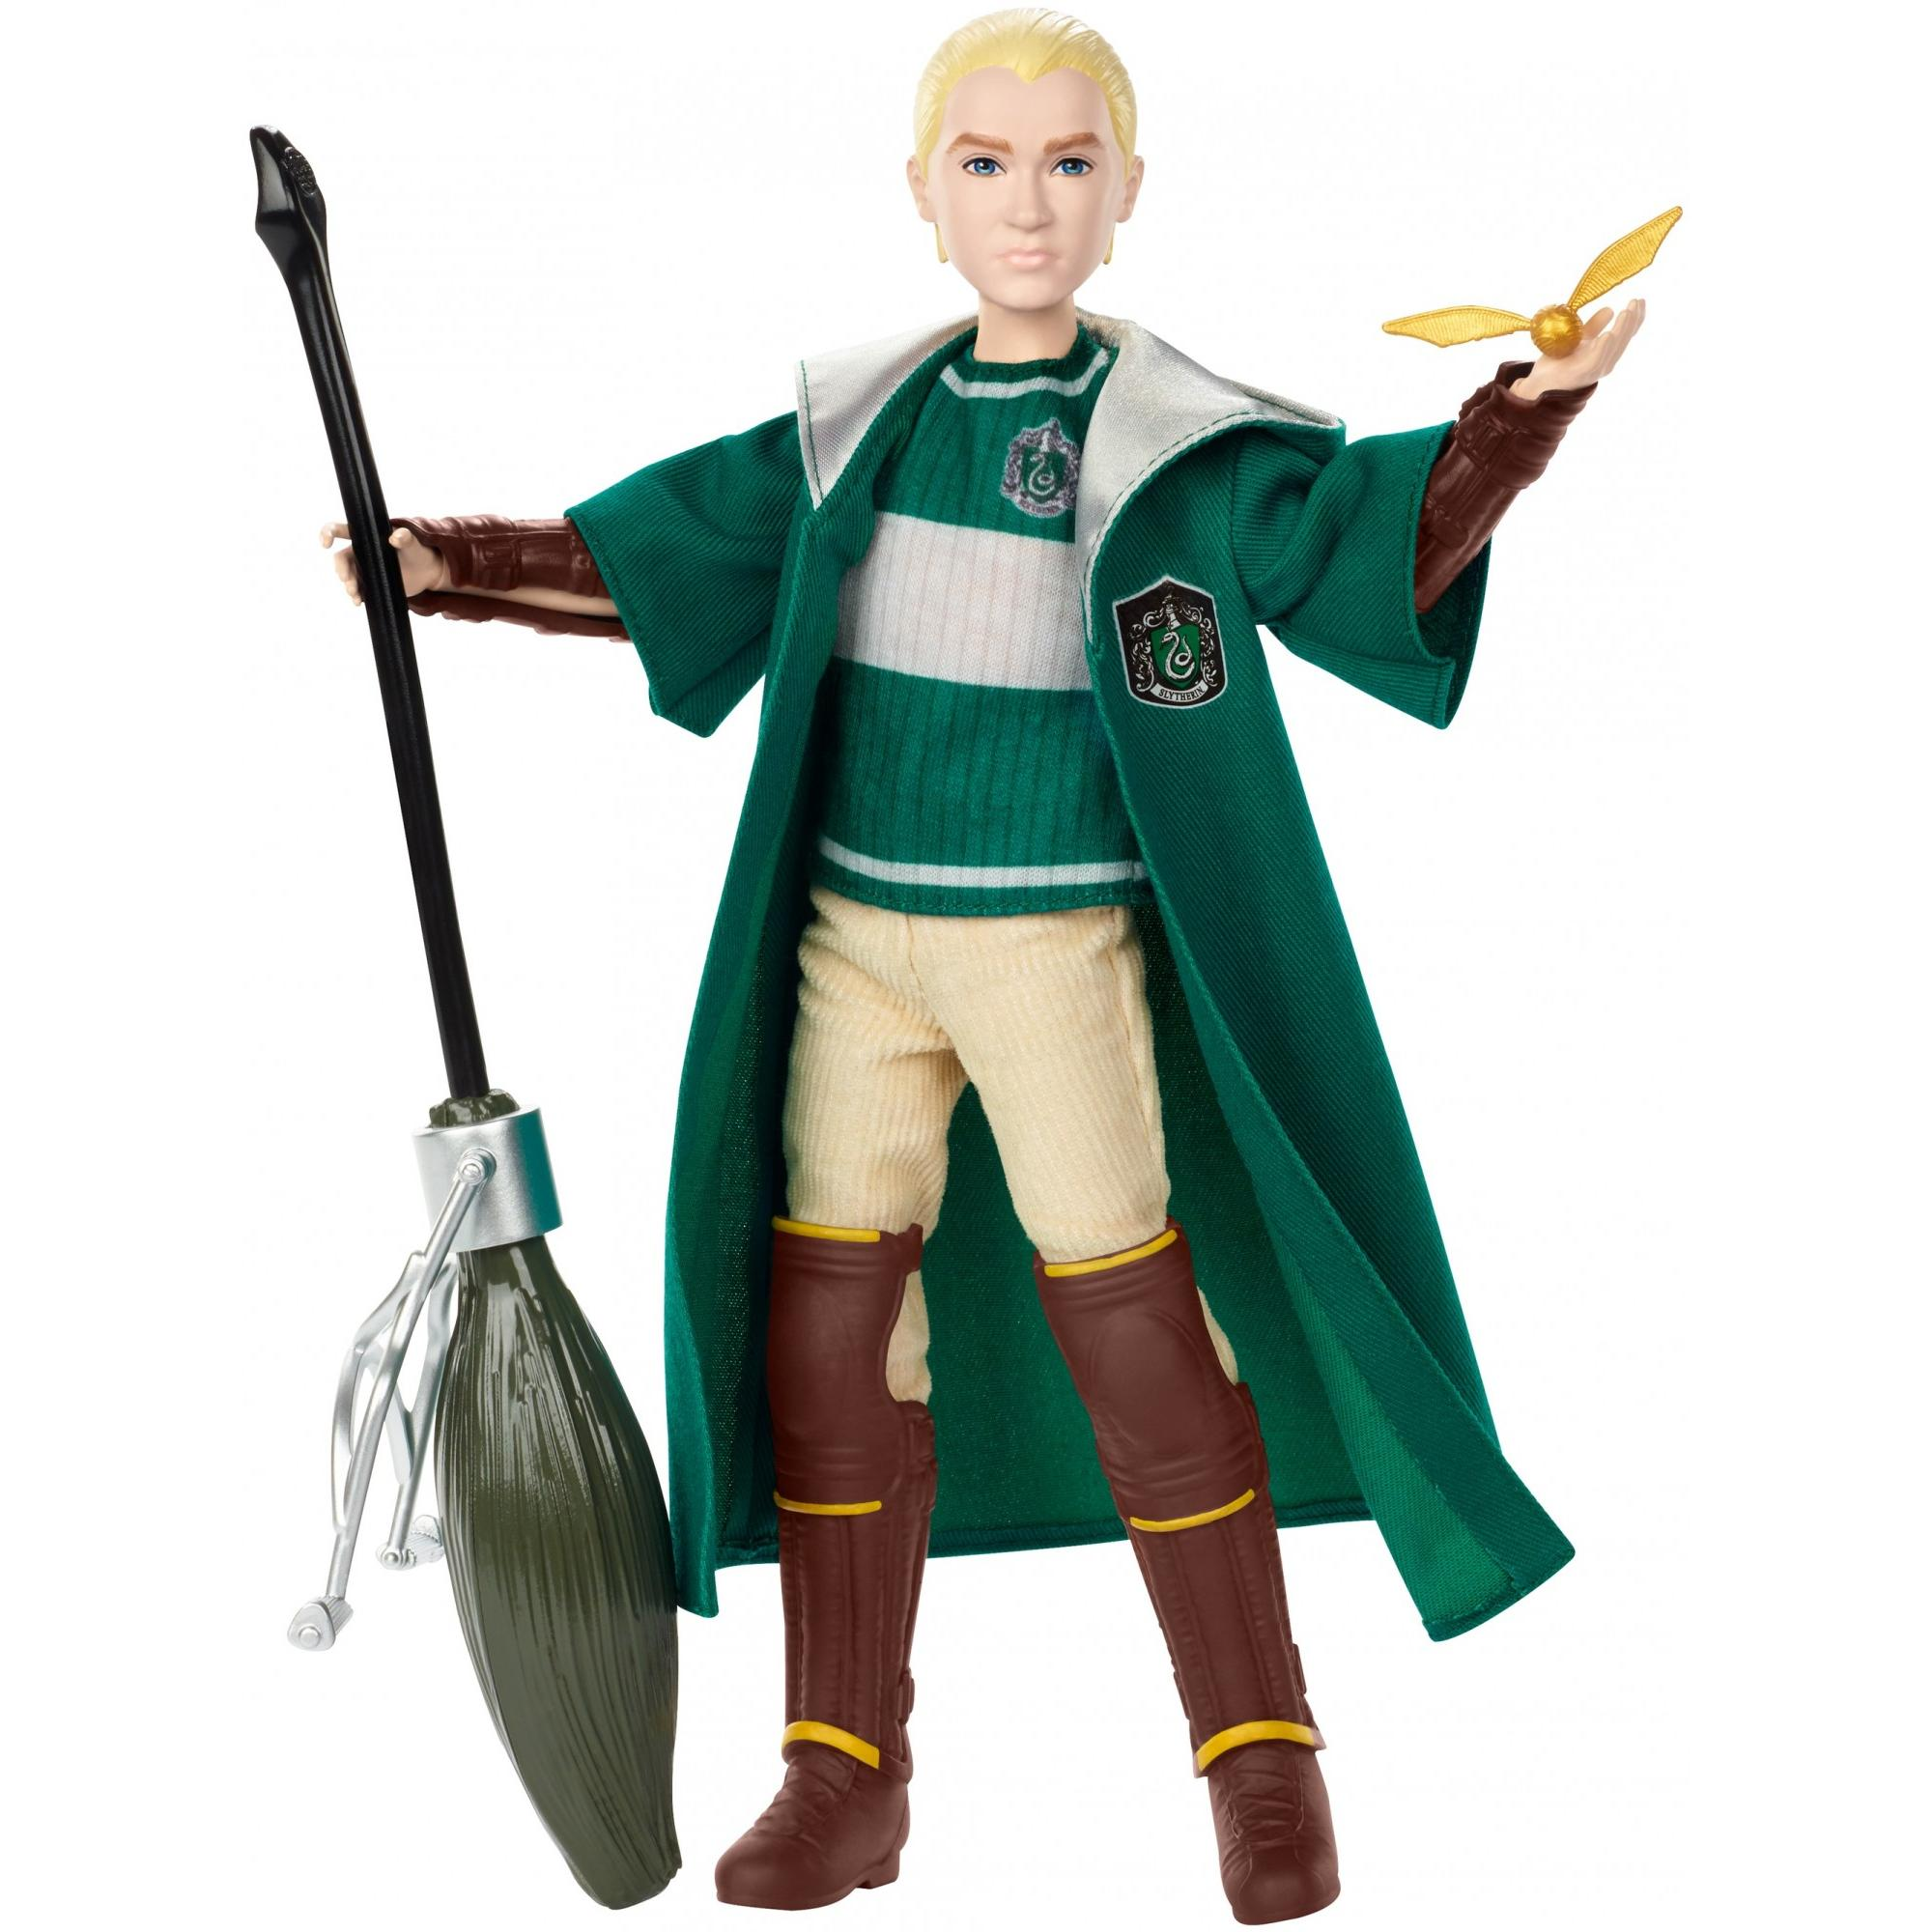 Harry Potter Quidditch Draco Malfoy Doll with Nimbus 2001 Broomstick by Mattel